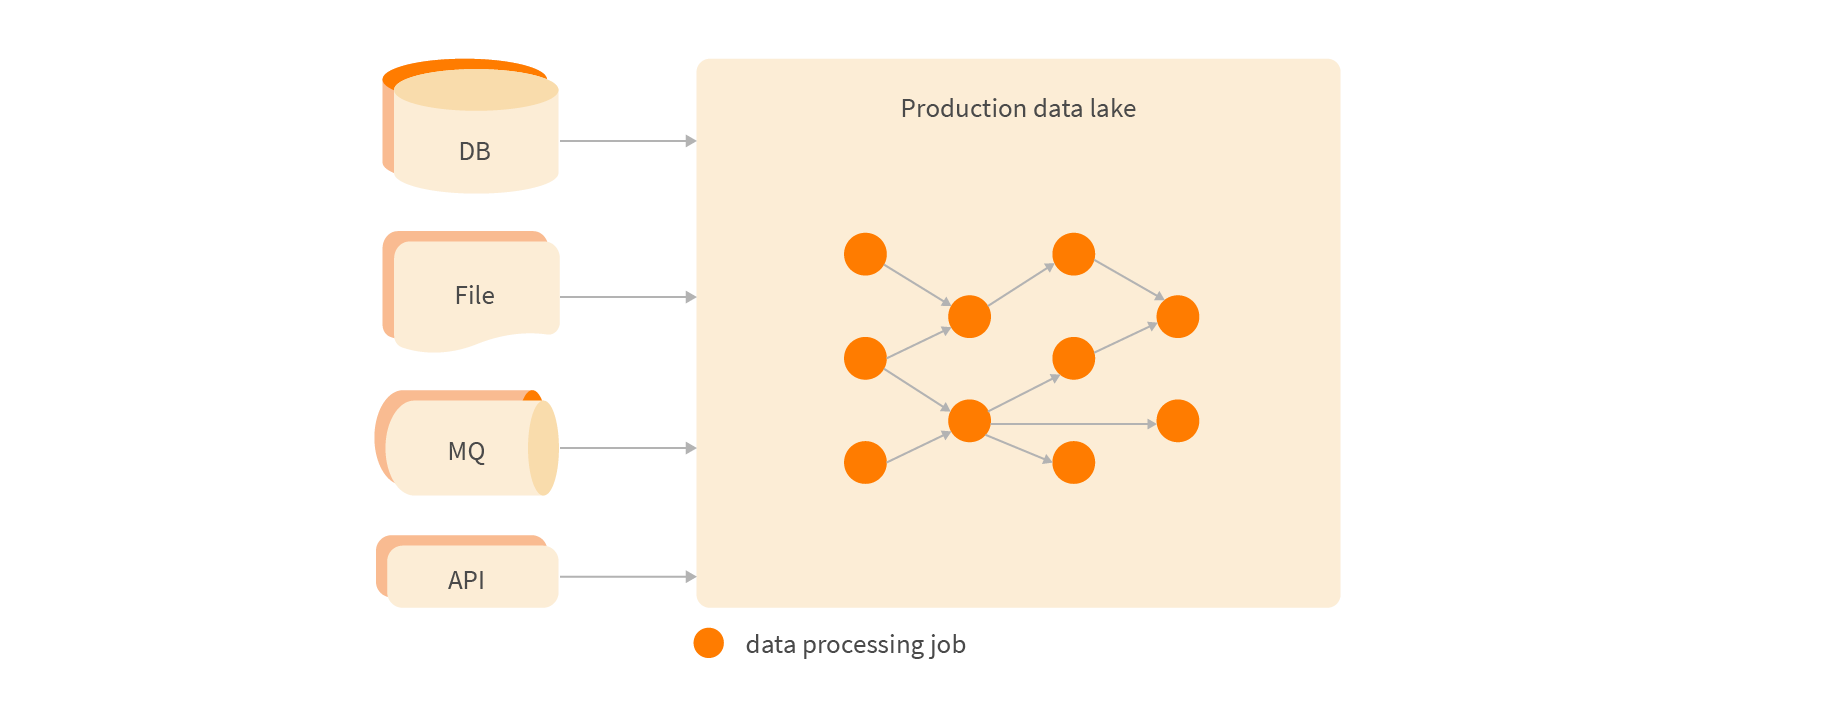 Data lake with no data quality monitoring